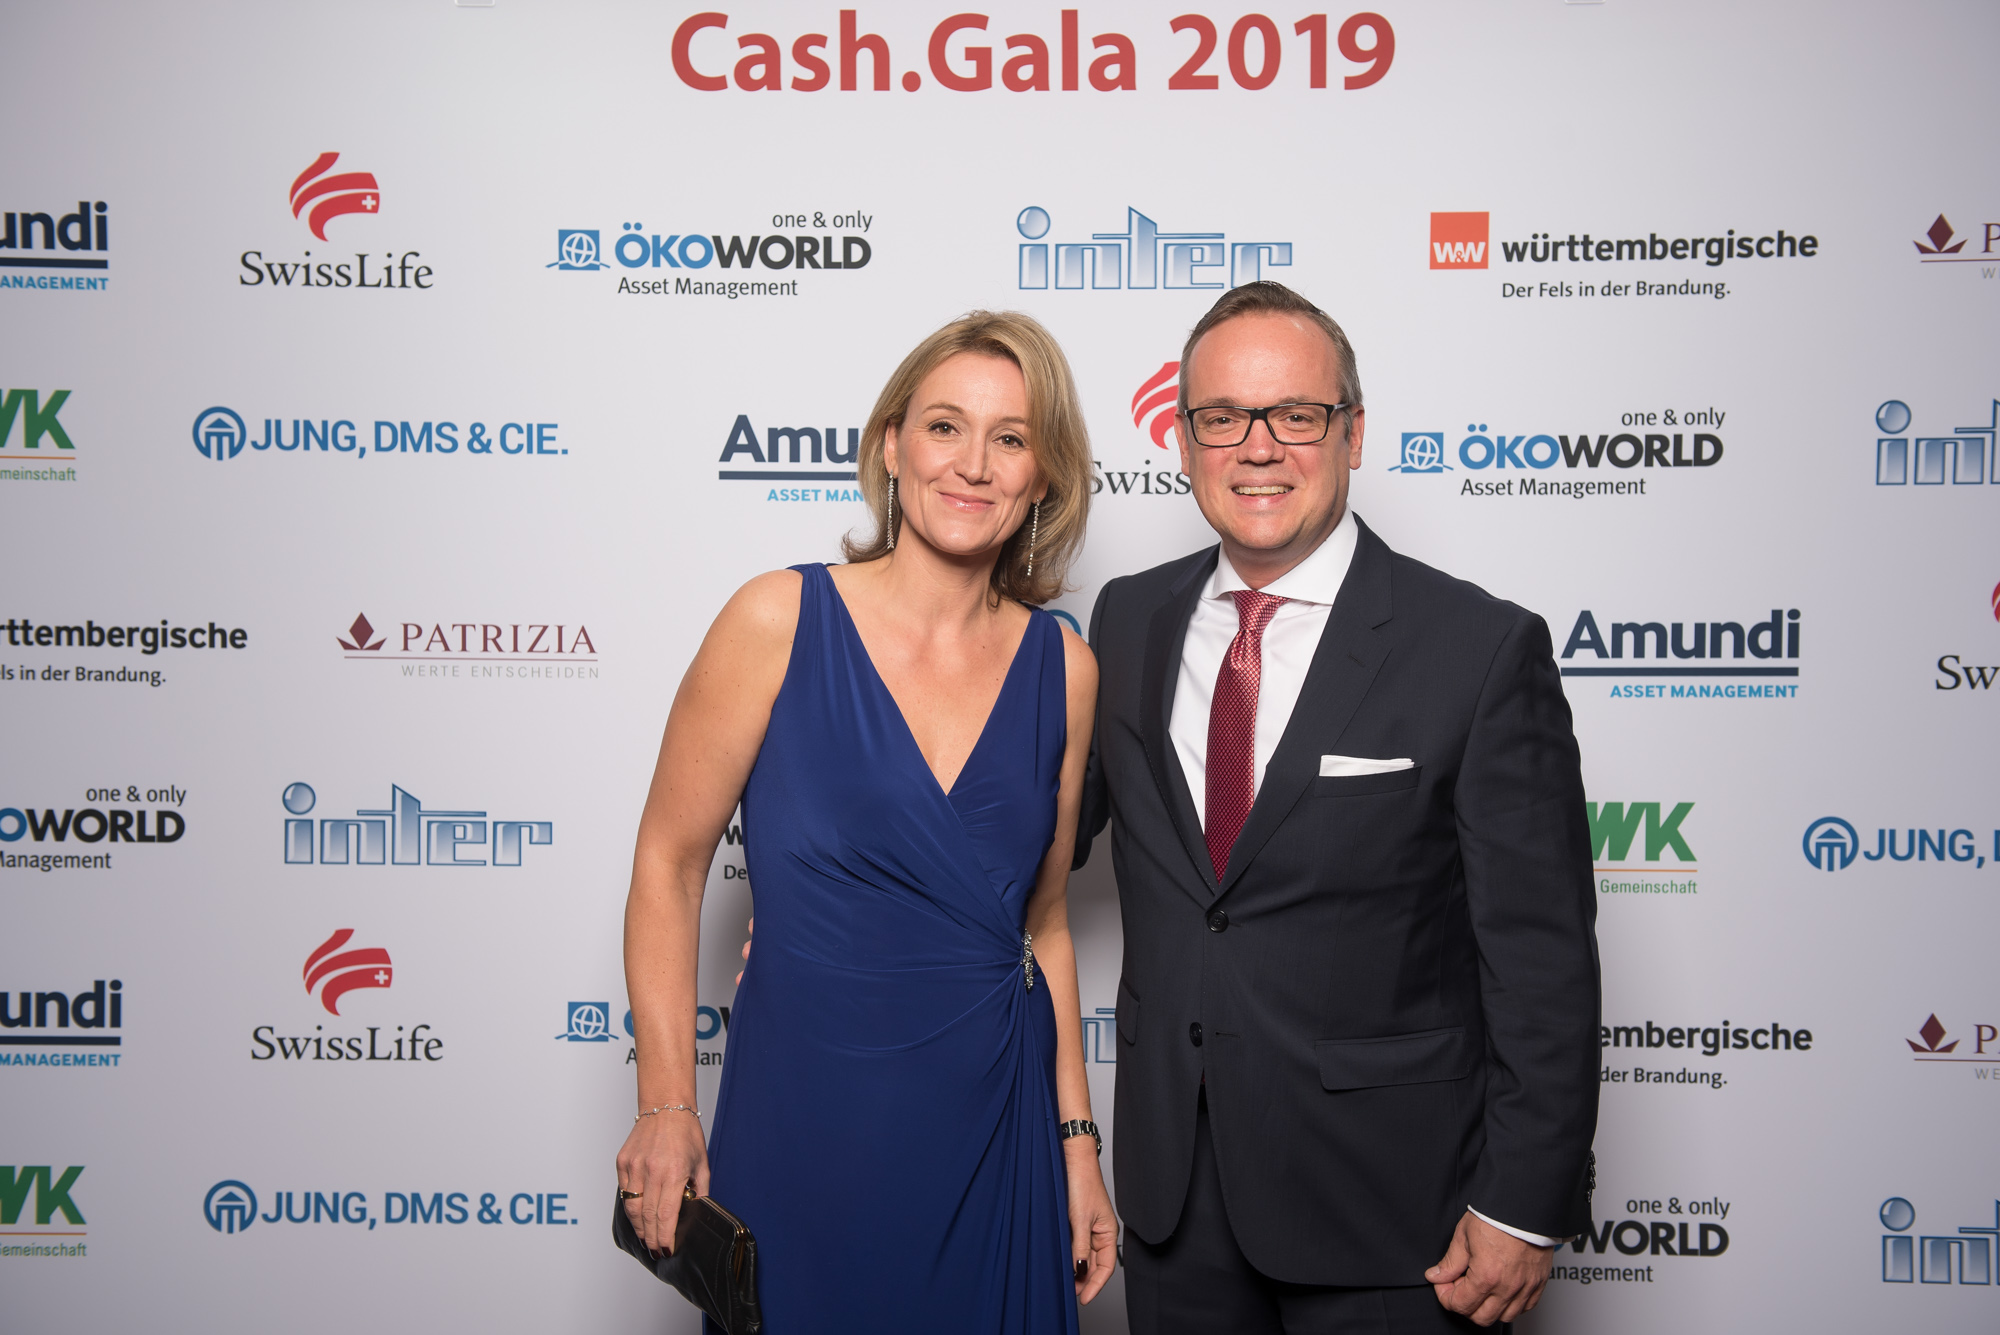 CashGala 2019 0035 AM DSC7043 in Cash.Gala 2019